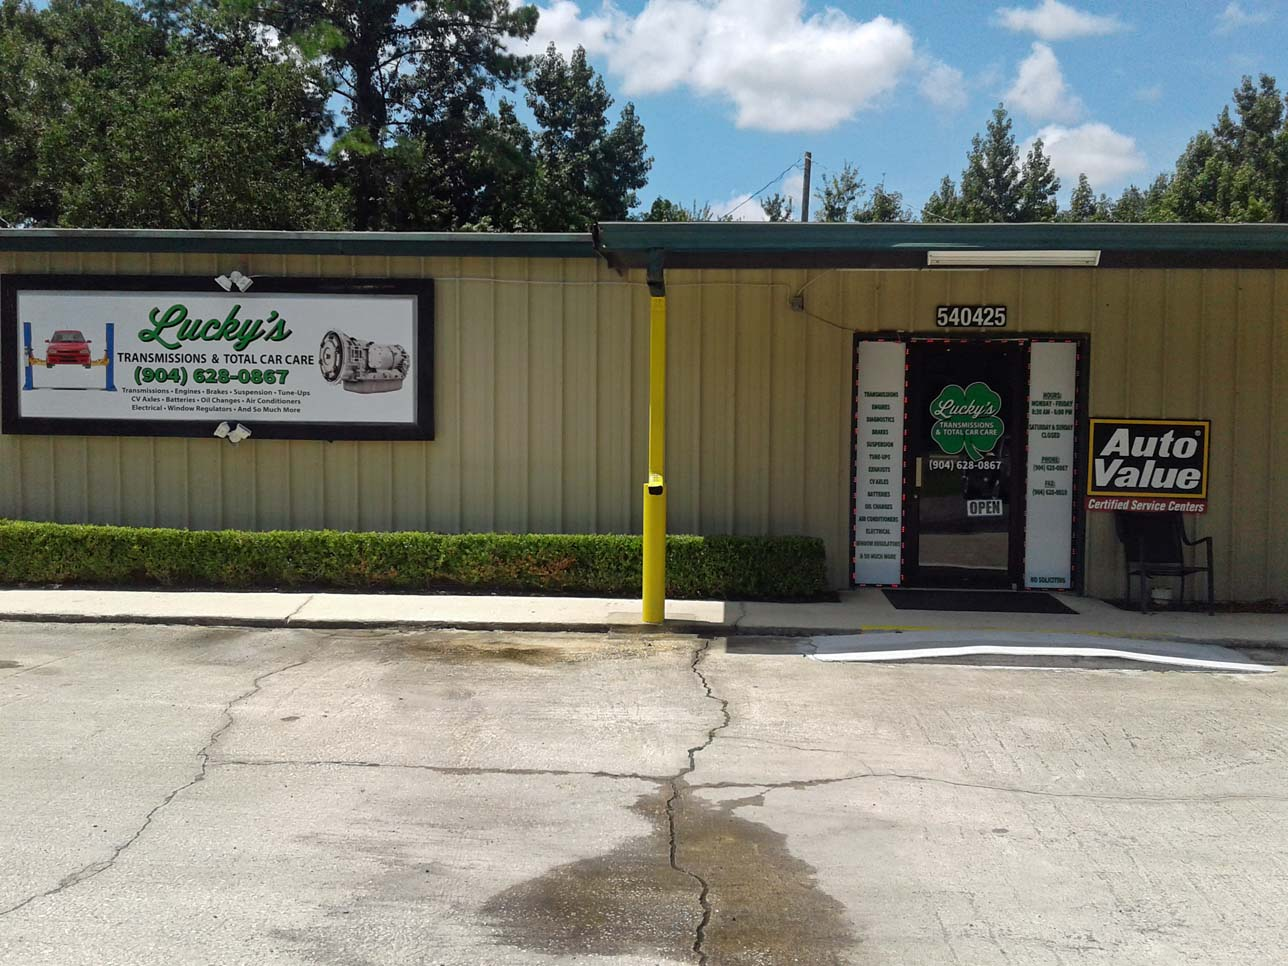 Luck's Trans & Total Car Care